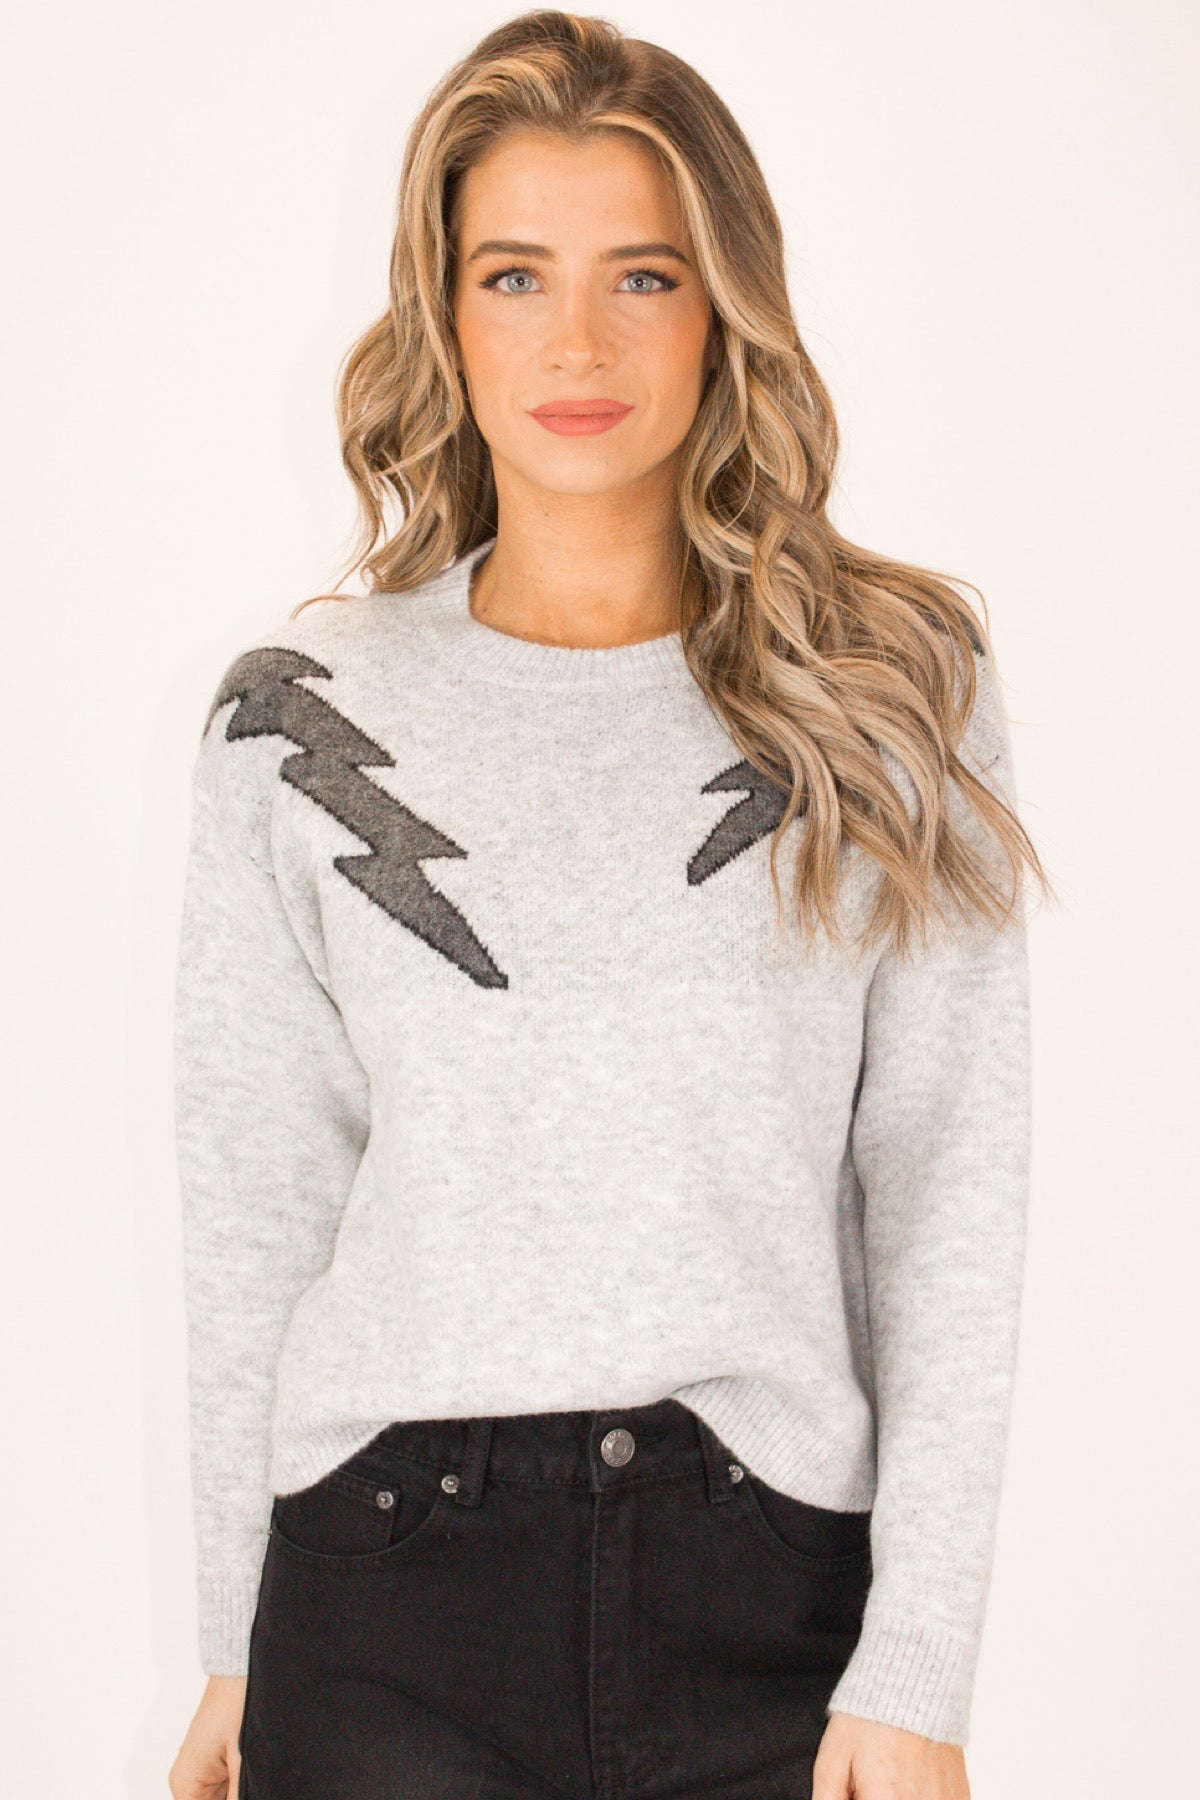 LIGHTNING BOLT SHOULDER SWEATER